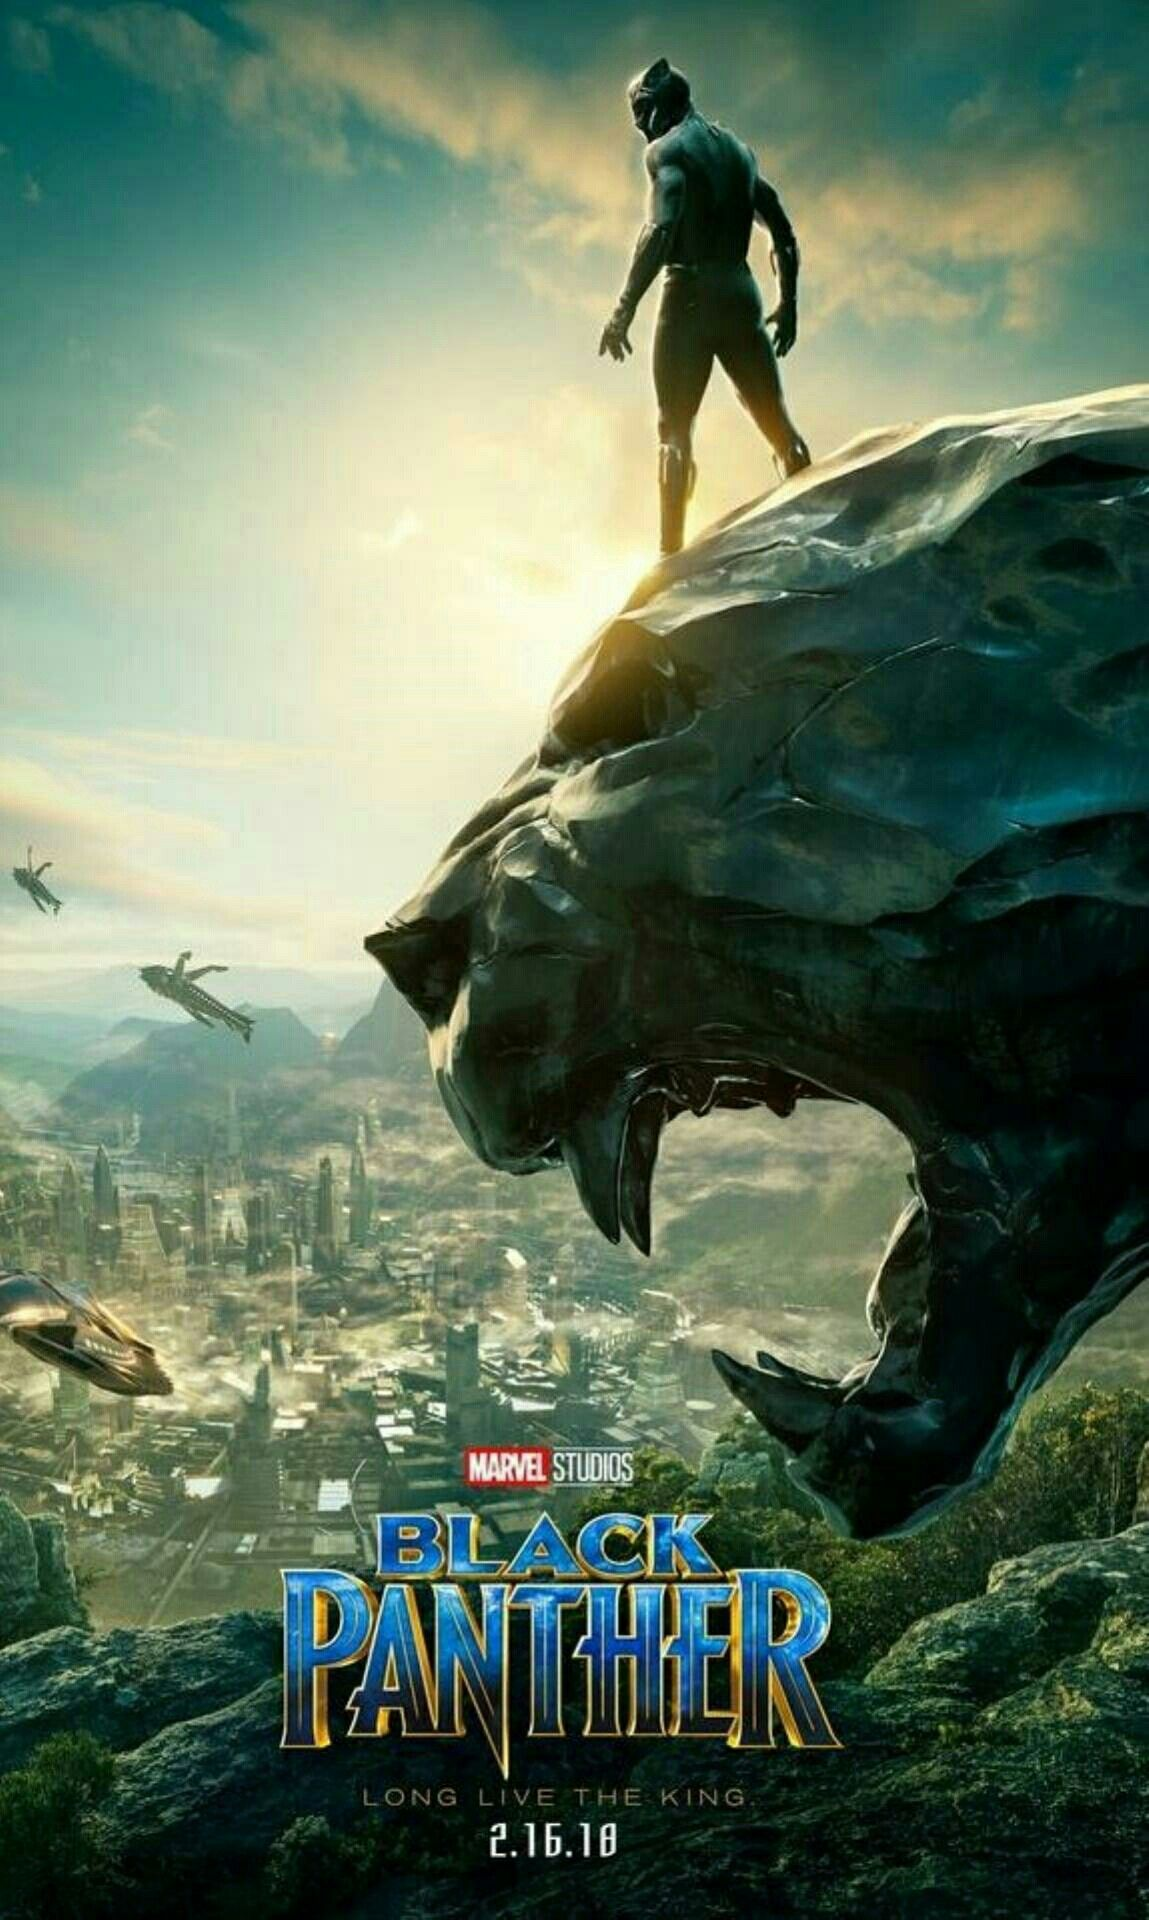 Black Panther Official Movie Poster In 2020 Black Panther Movie